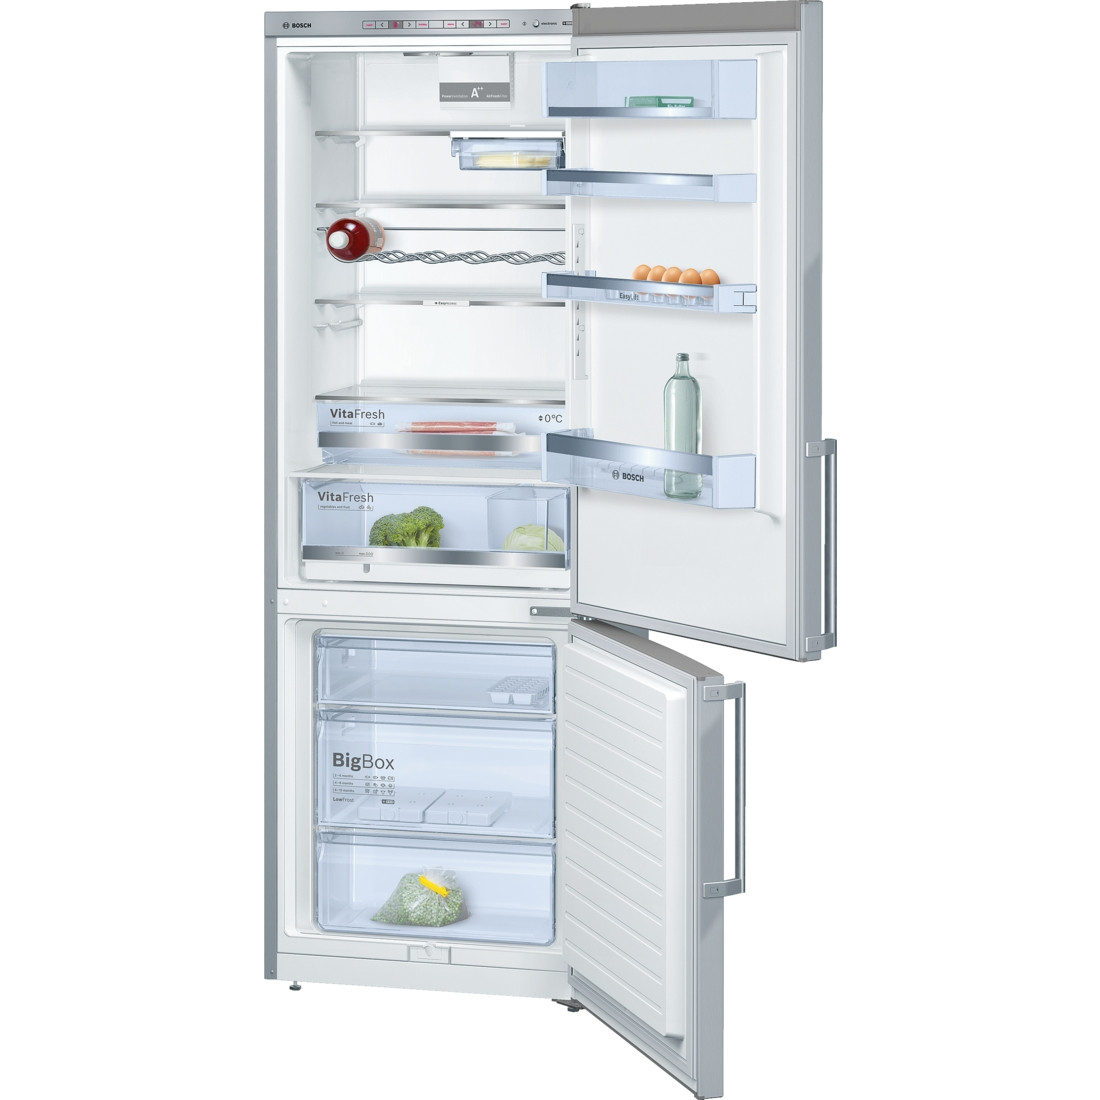 Bosch Serie 6 KGE49BI30G Freestanding Stainless Steel Fridge Freezer